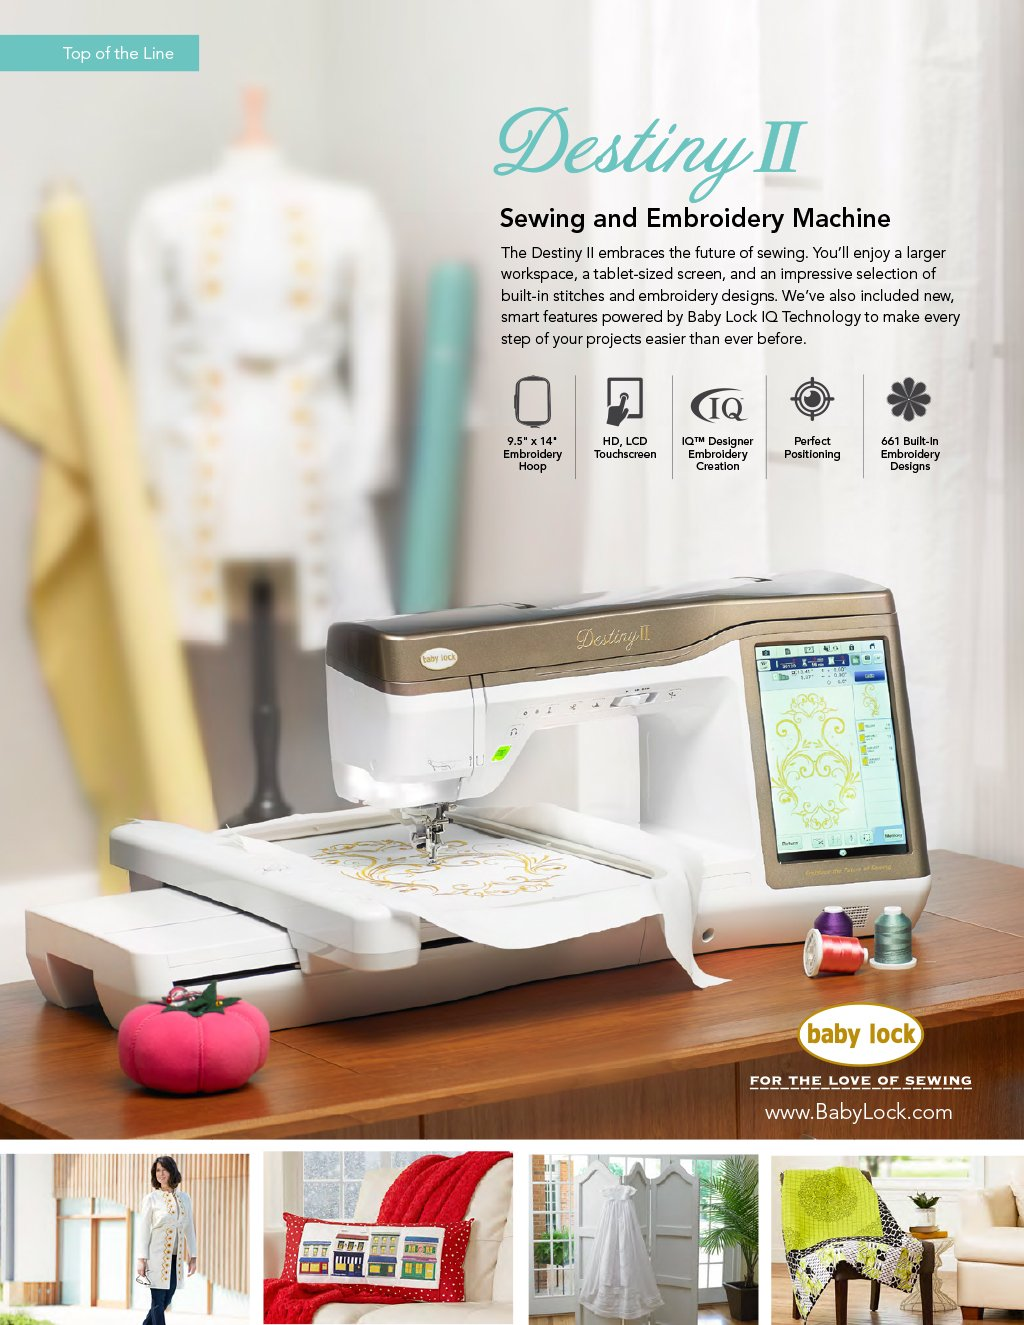 Babylock Destiny Ii Sewing And Embroidery Machine